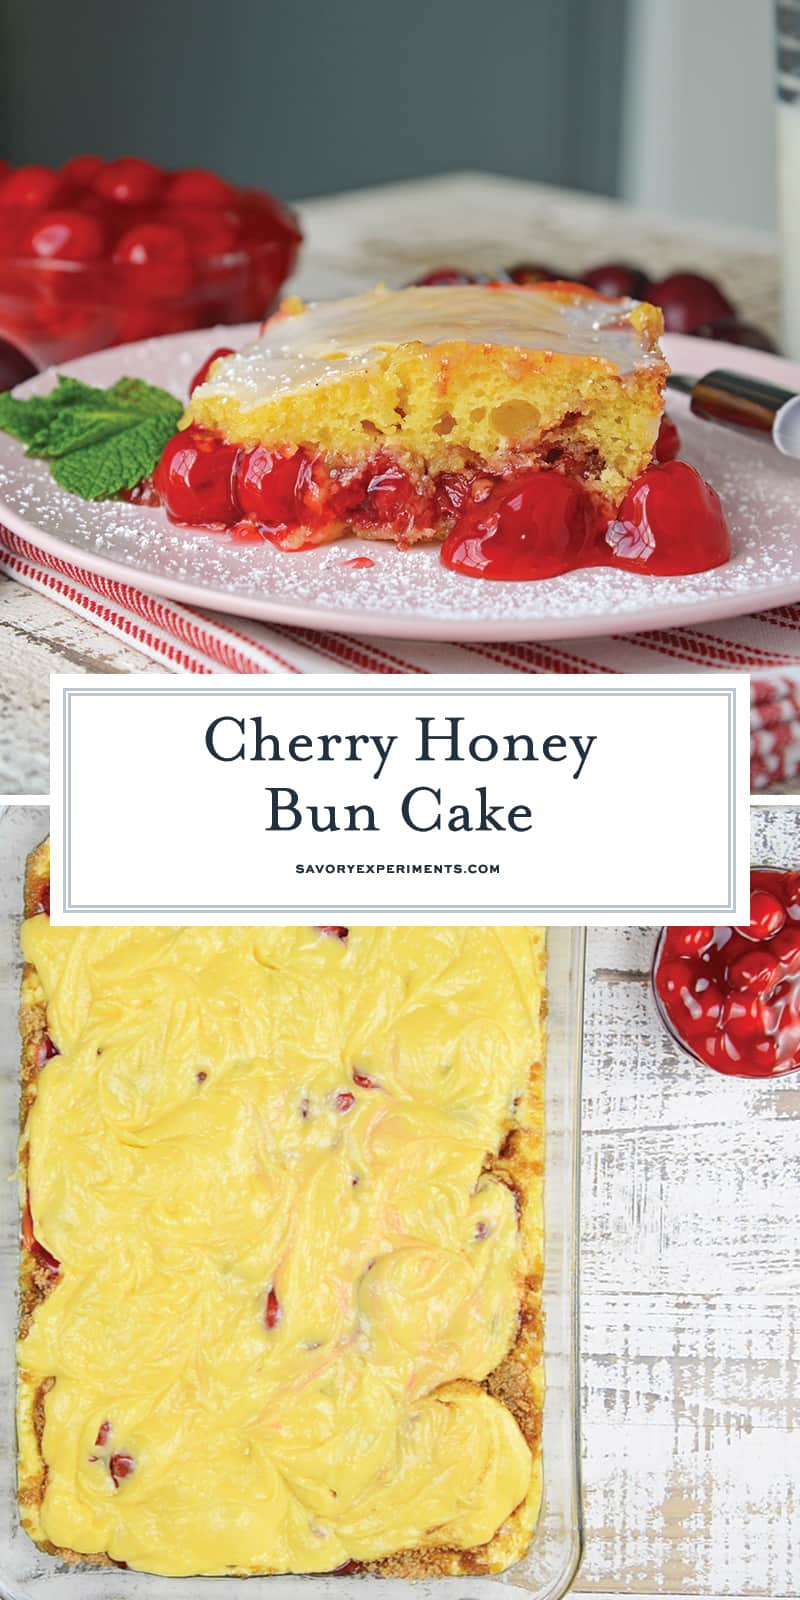 What is better than a Honey Bun Cake? A CHERRY Honey Bun Cake! Yellow cake mix laced with cinnamon, brown sugar and cherry pie filling, drizzled with almond glaze. #honeybuncake www.savoryexperiments.com